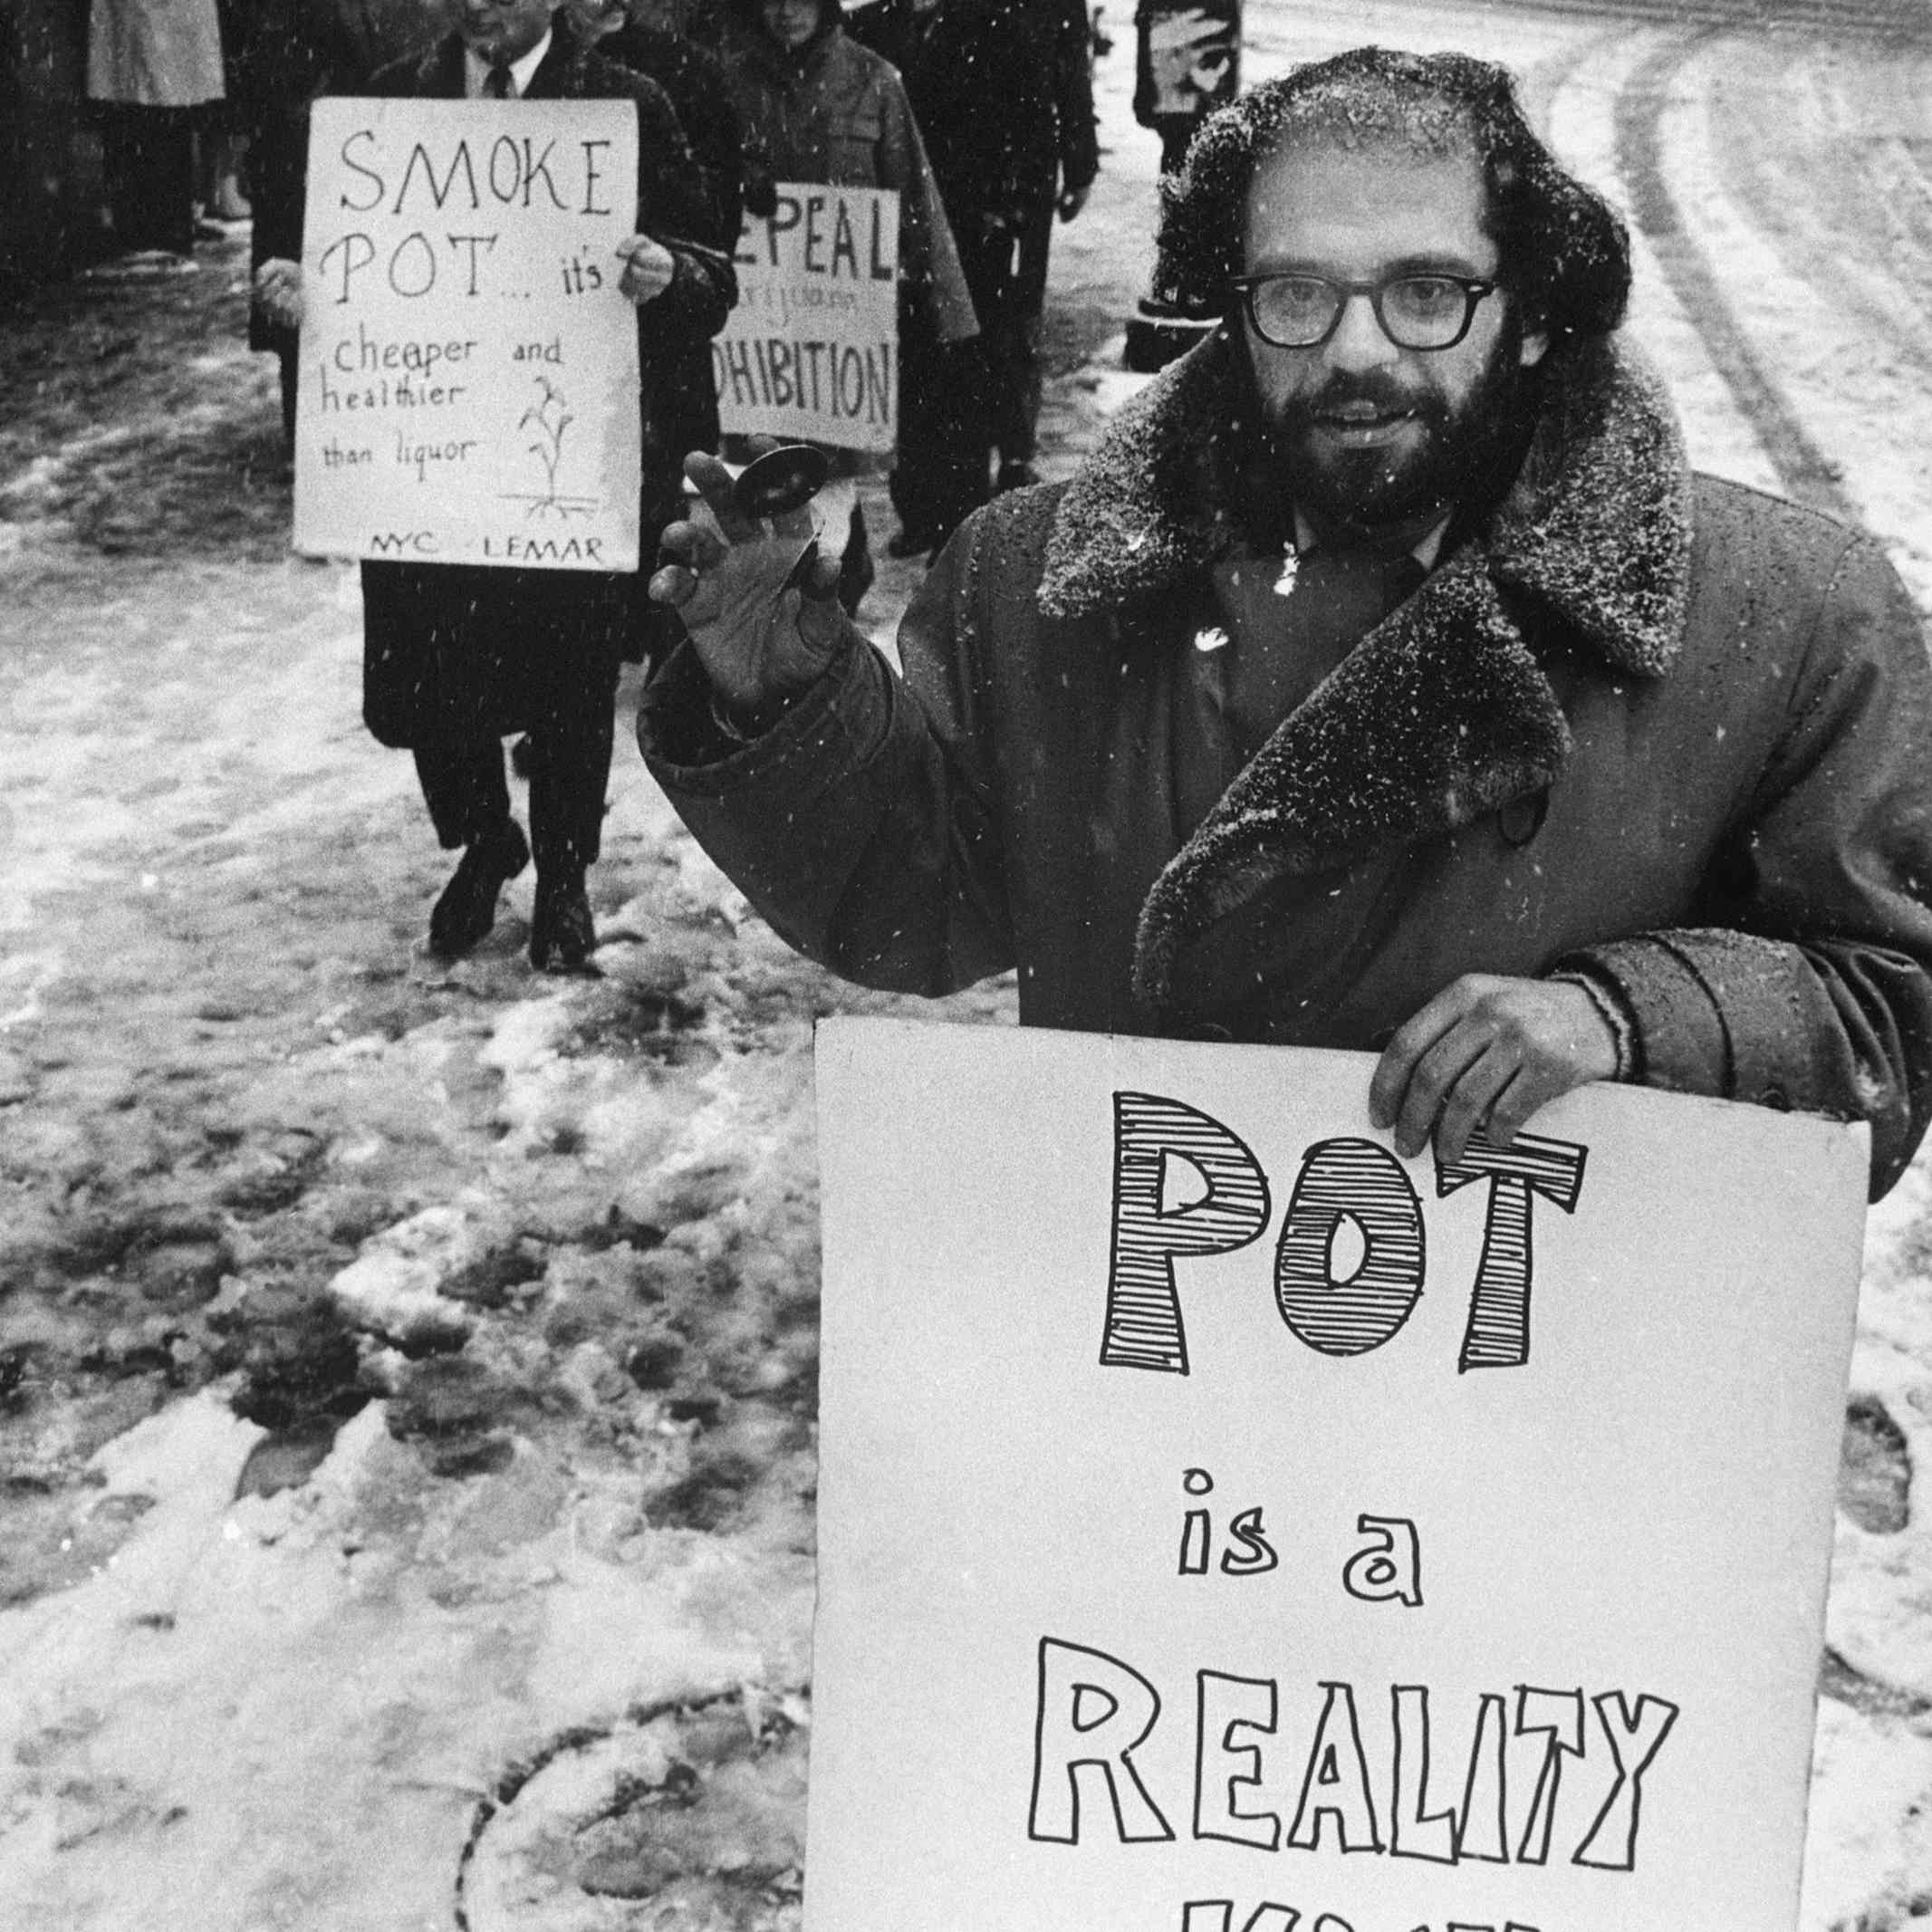 Allen Ginsberg Amongst Protesters at Marijuana Rally